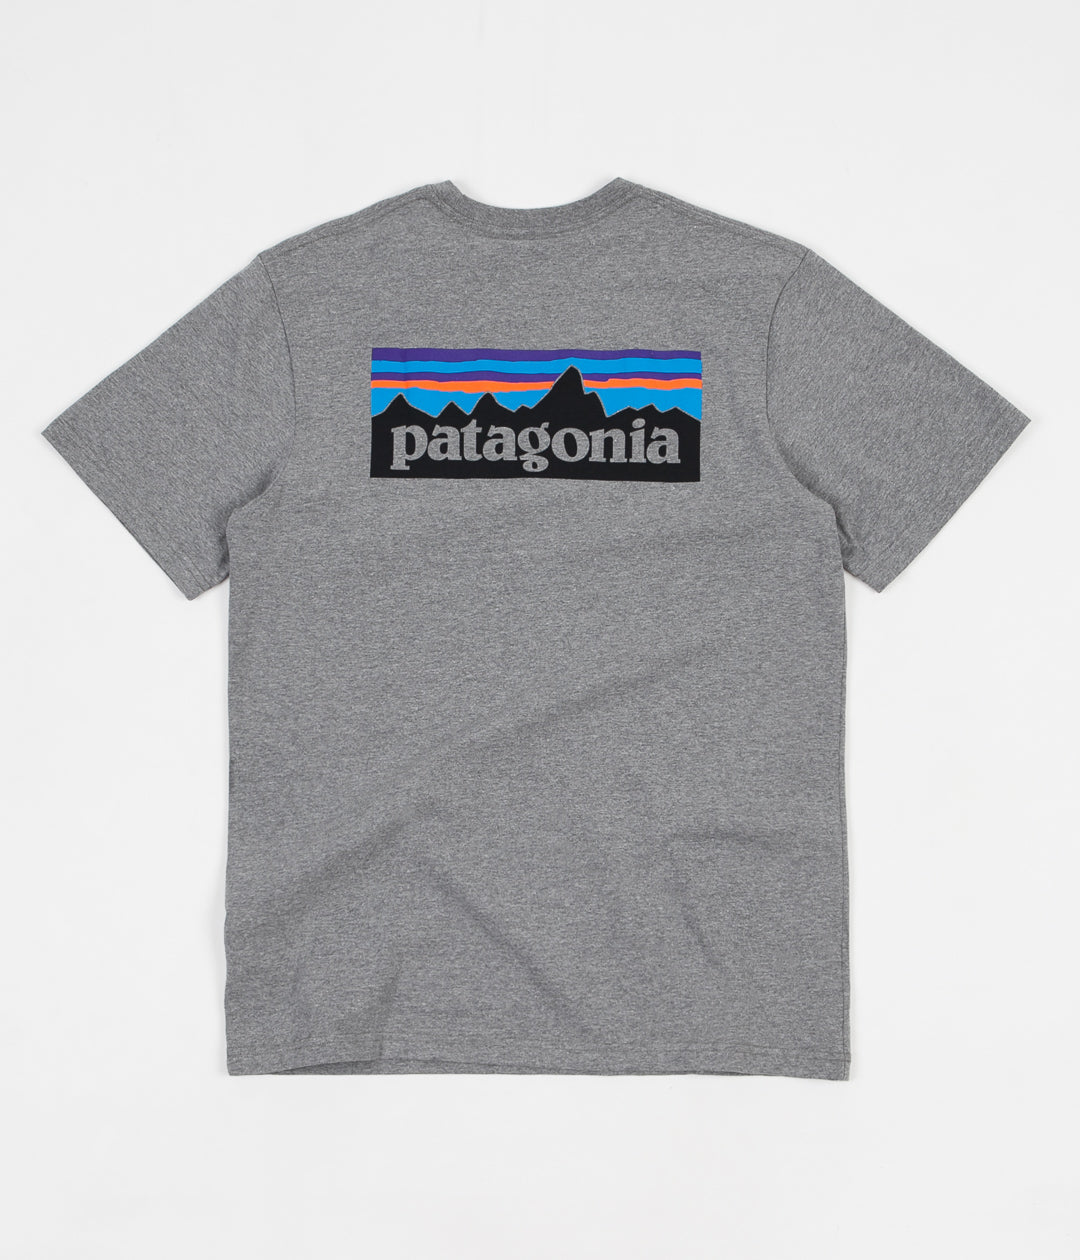 Patagonia P-6 Logo Responsibili-Tee Pocket T-Shirt - Gravel Heather